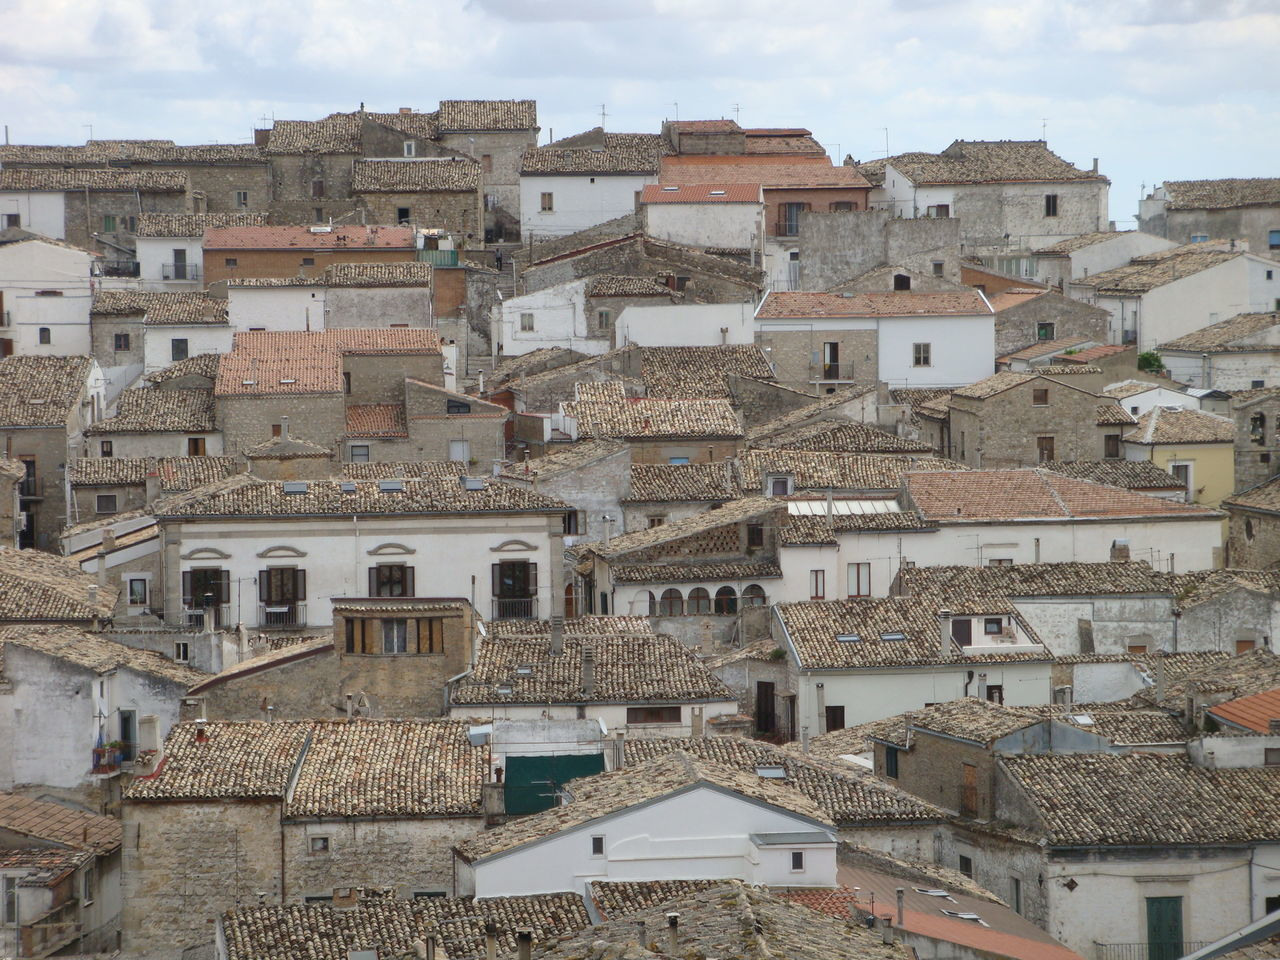 Architecture Building Exterior Caracteristic Village Cityscape Crowded Old Village Puglia Roof Sky South Of Italy Town Travel Destinations White Village